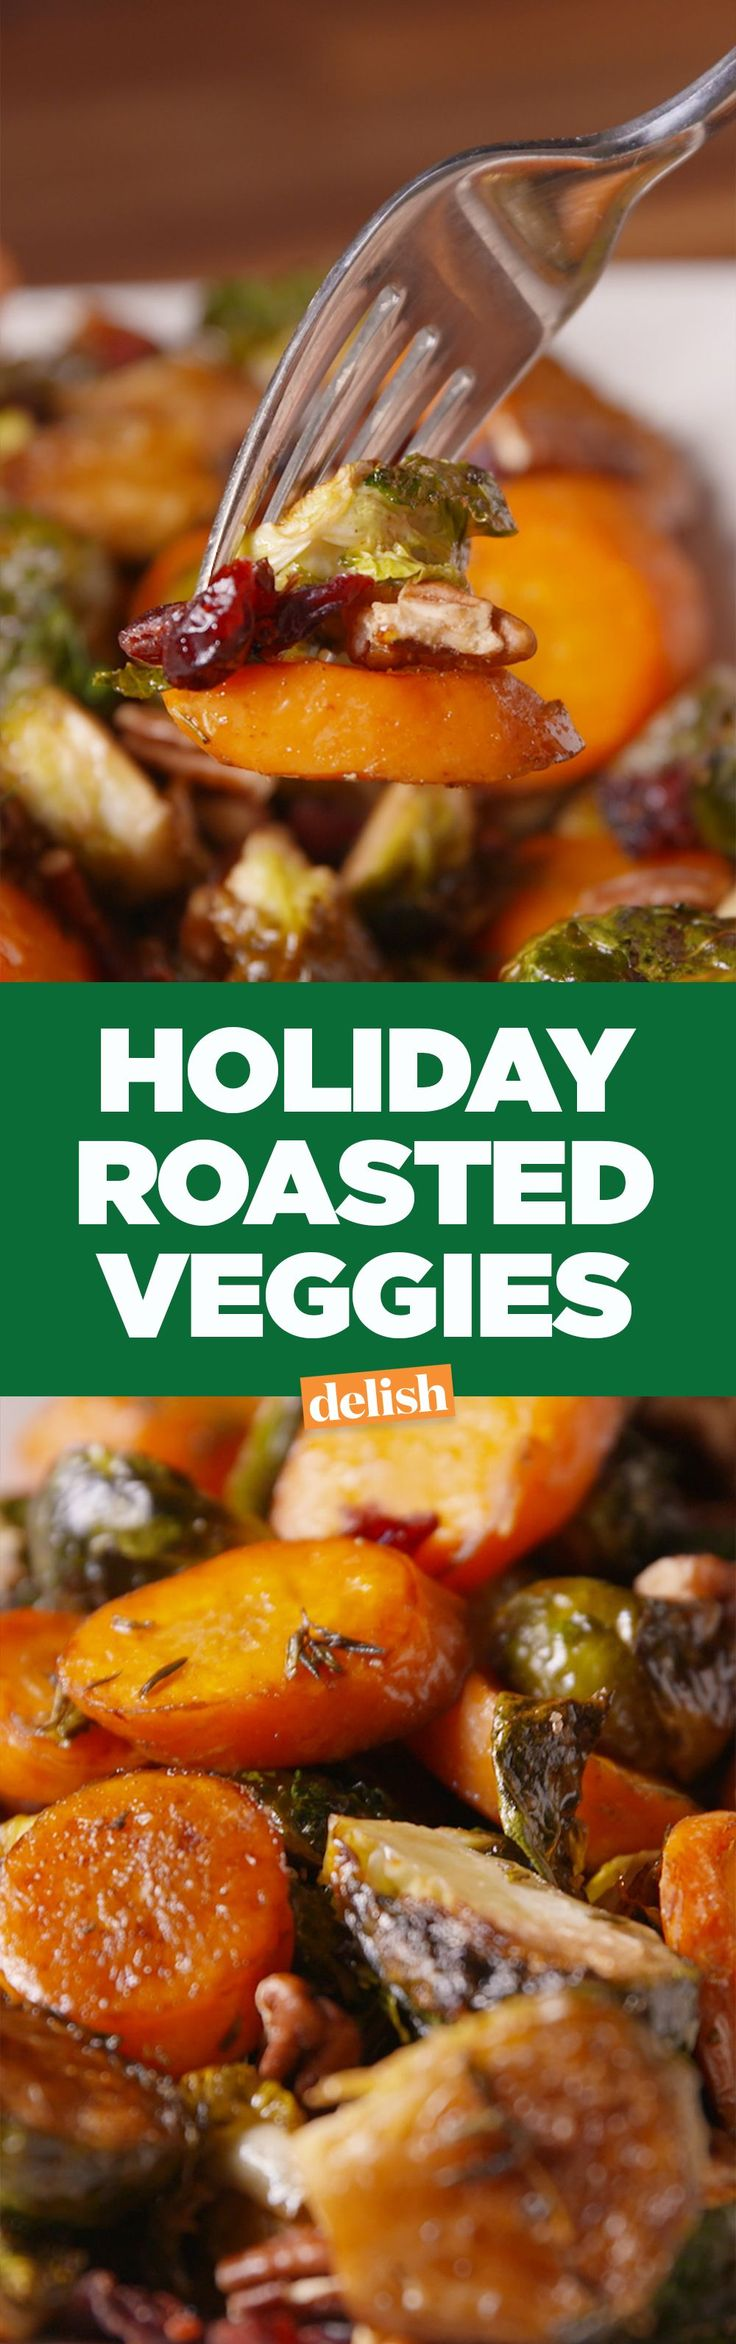 Holiday Roasted Veggies are the perfect one-pan side dish for Thanksgiving. Get the recipe on Delish.com.